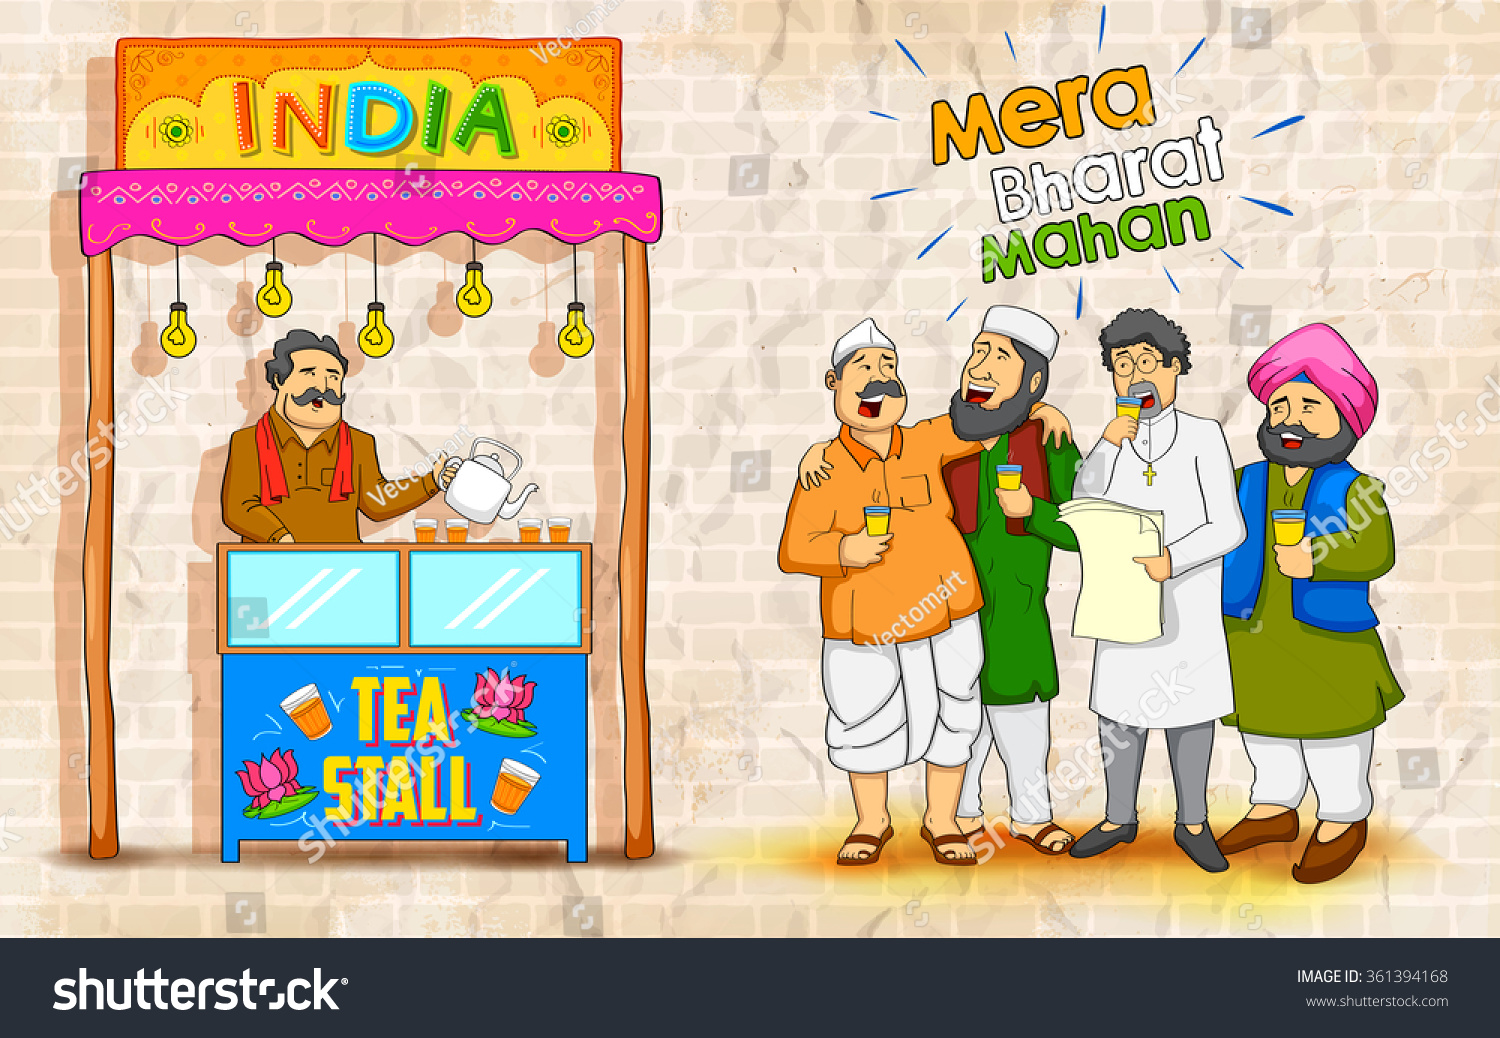 short essay on unity in diversity for kids Unity in diversity in india – essay the outstanding features of indian culture responsible for bringing unity in diversity may be summarized as follows: (a.